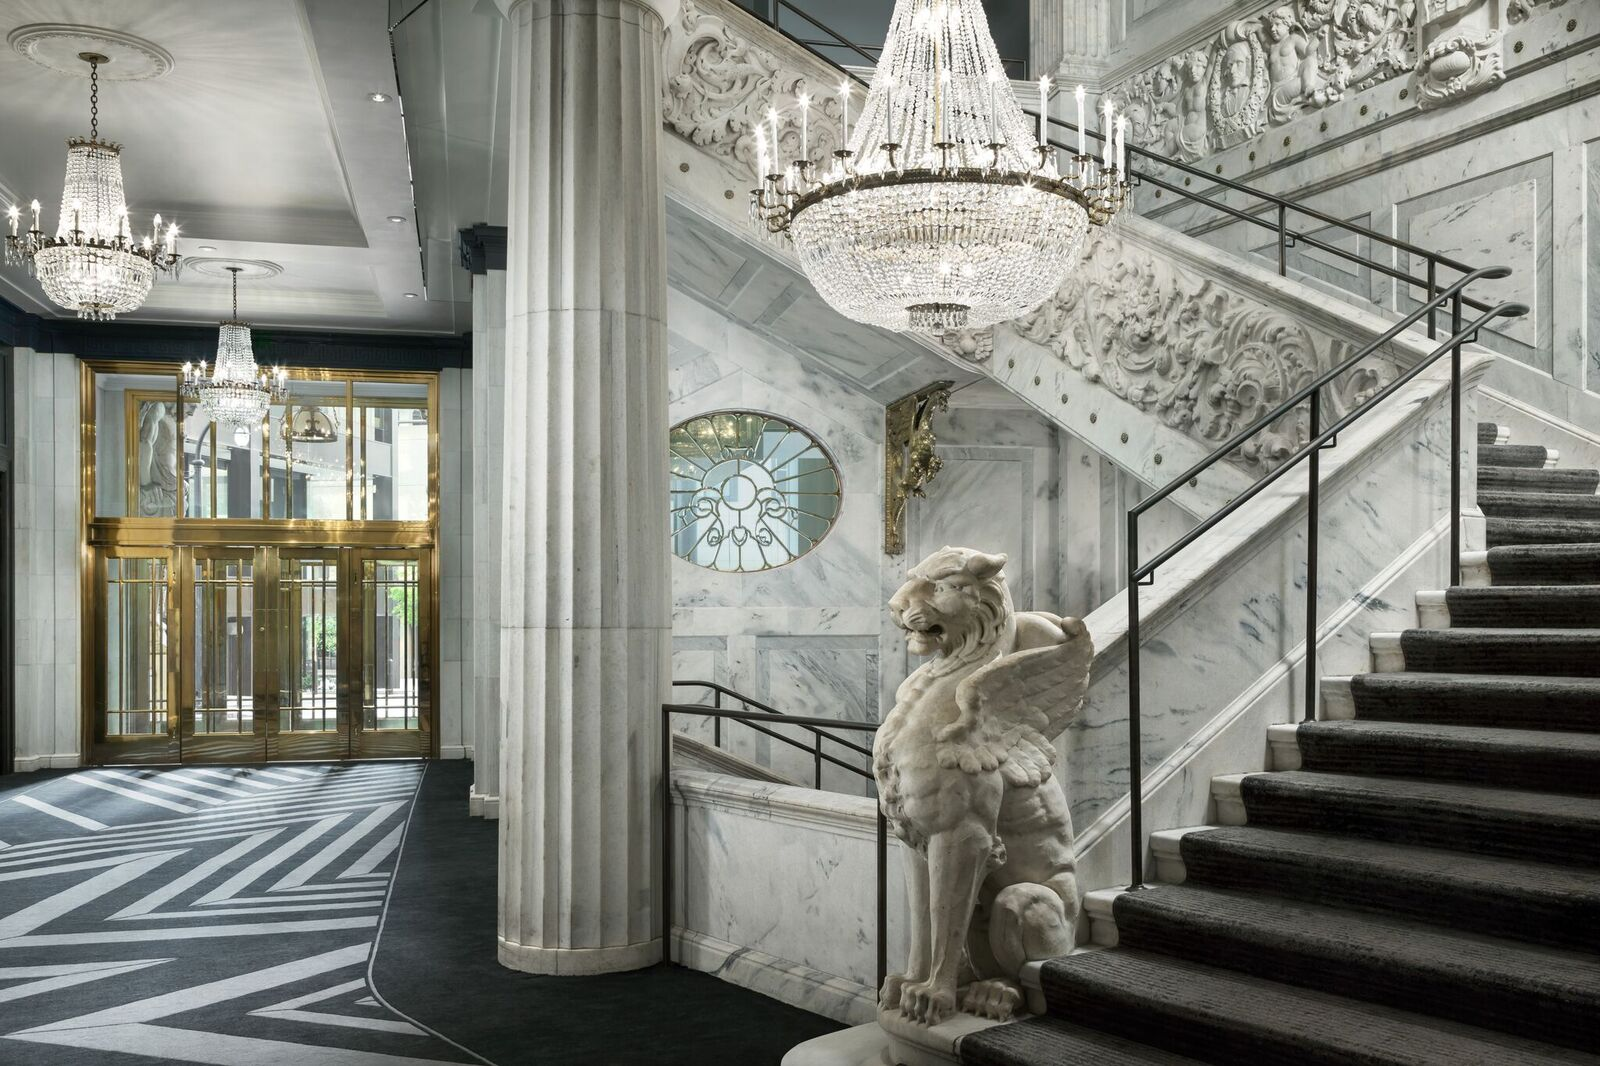 An opulent hotel lobby of marble and crystal.